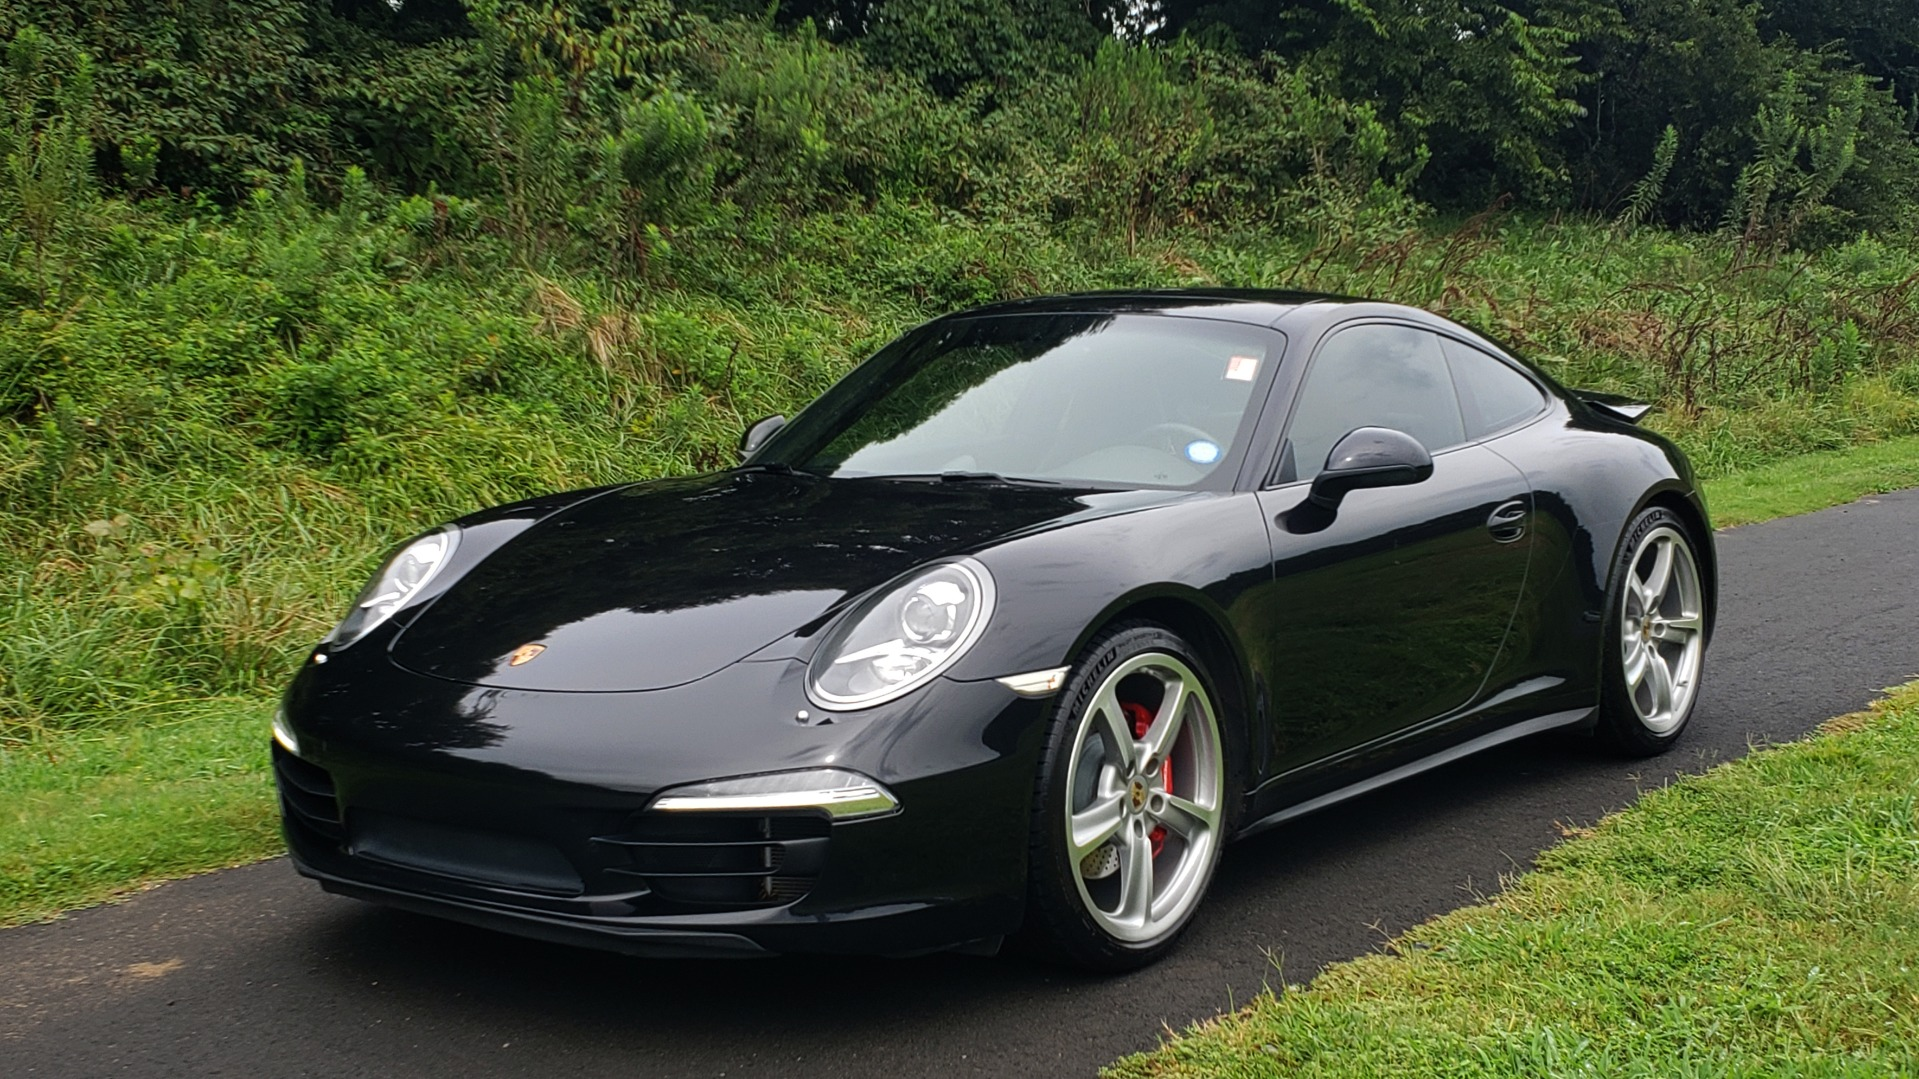 Used 2014 Porsche 911 CARRERA 4S / AWD / 3.8L / PDK / CHRONO / NAV / BOSE / SUNROOF for sale Sold at Formula Imports in Charlotte NC 28227 4